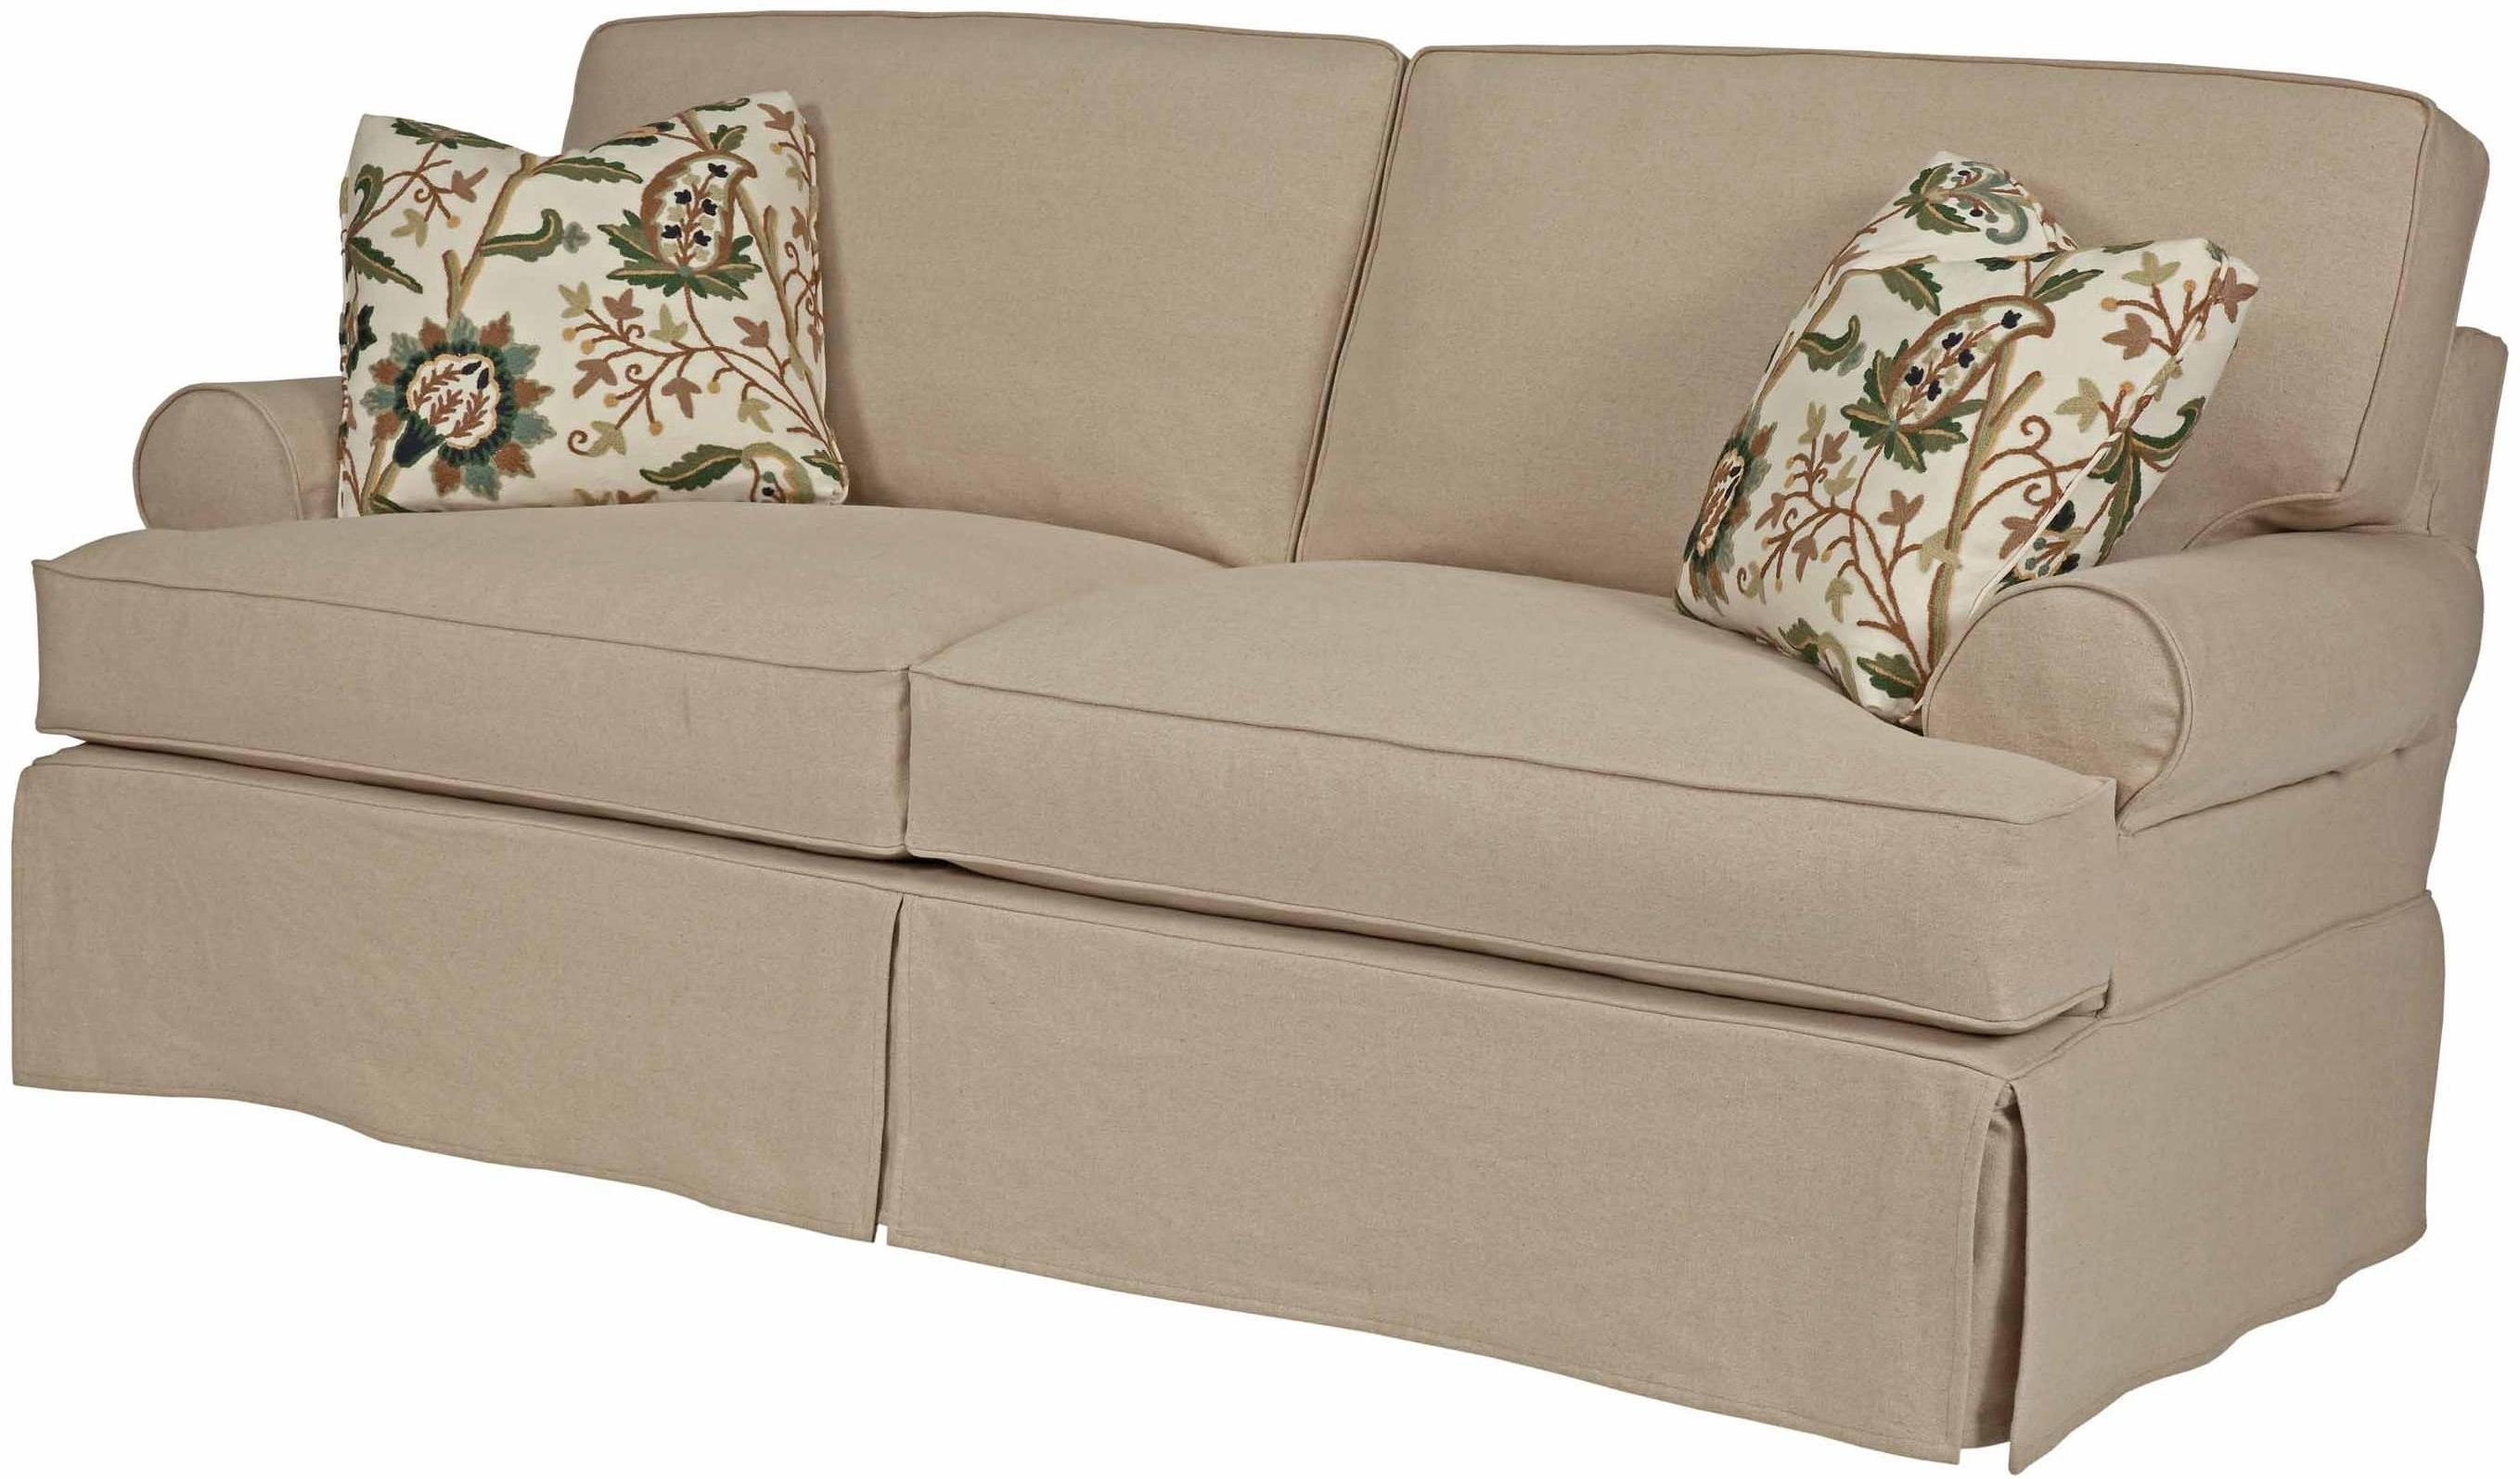 20 best slipcovers for 3 cushion sofas sofa ideas for 3 on a couch